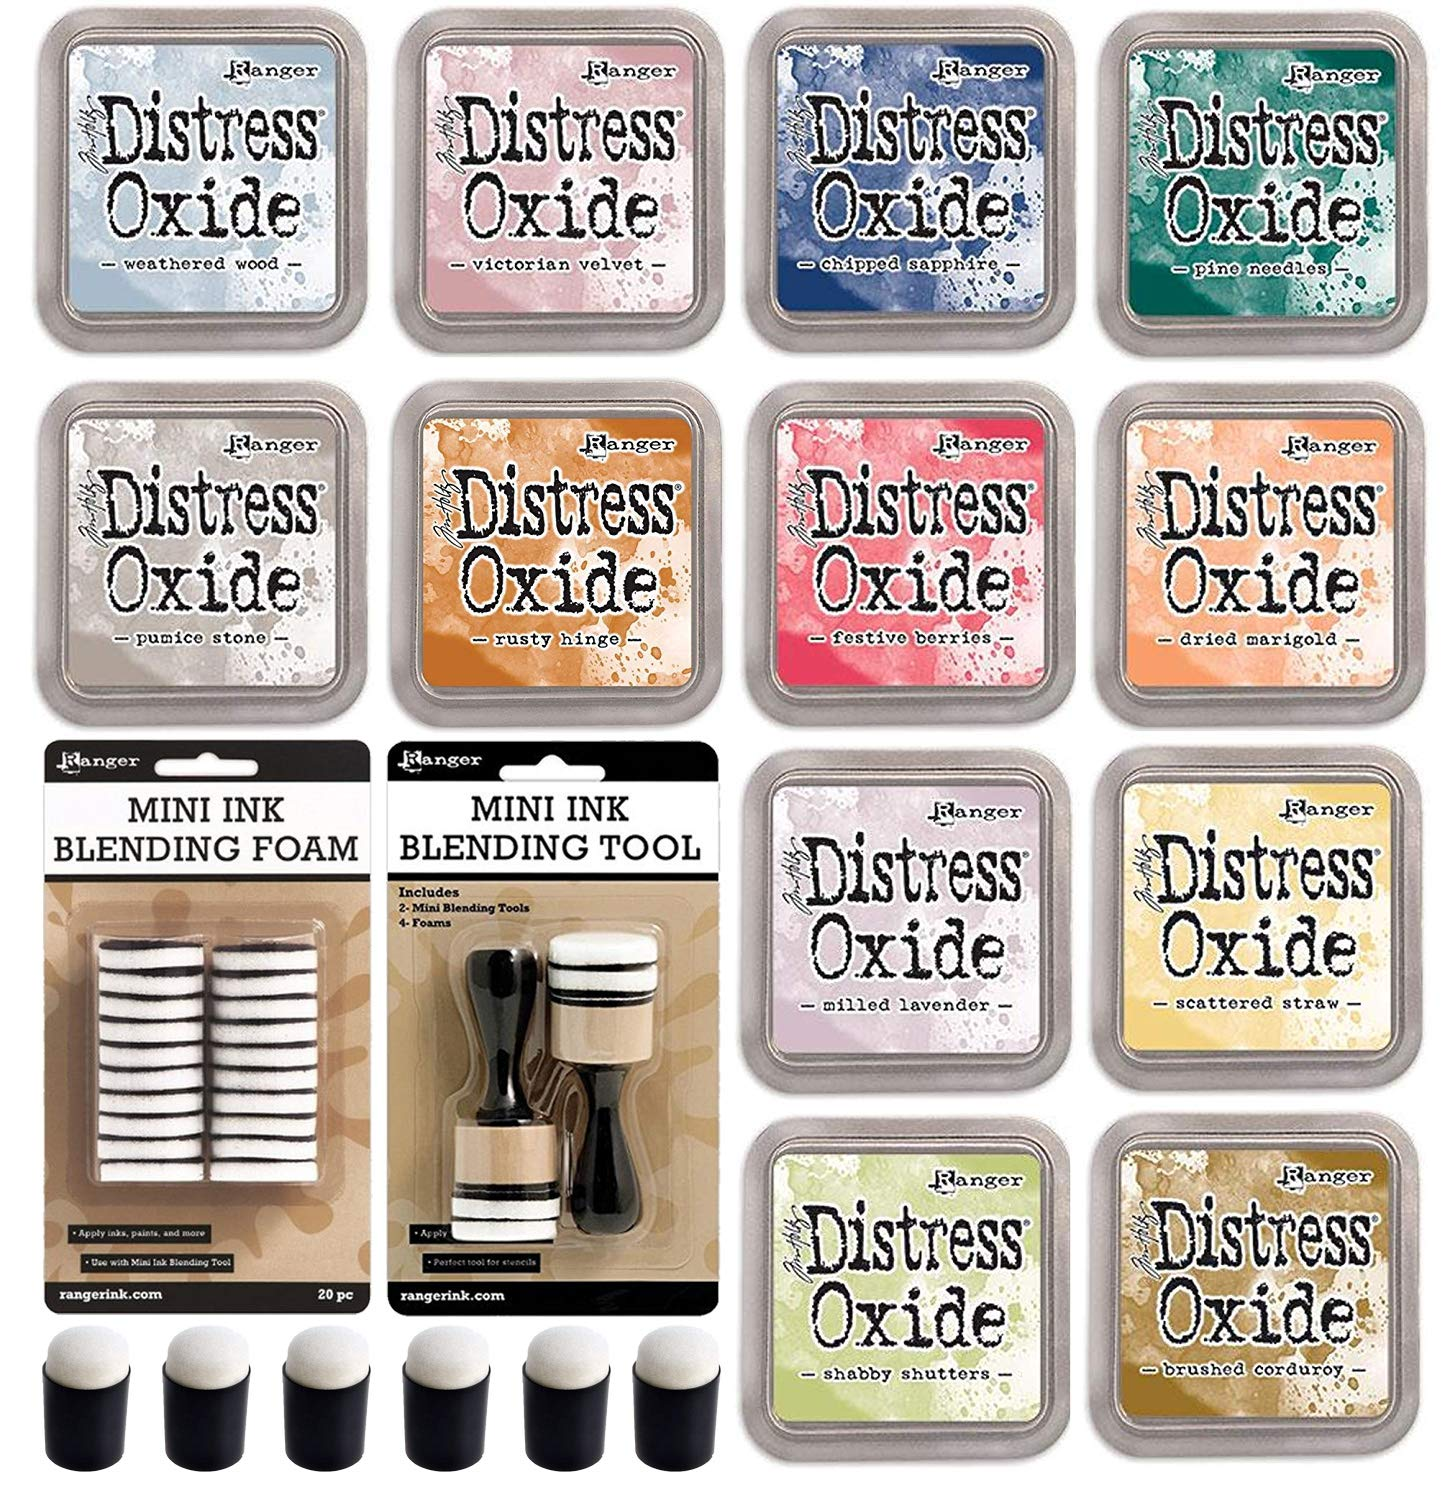 Ranger Tim Holtz Distress Oxide Ink Pads Fall 2018 Colors with 6X Pixiss Mini Finger Blending Tools Daubers, Mini Ink Blending Round Tool, 20x Replacement Foams